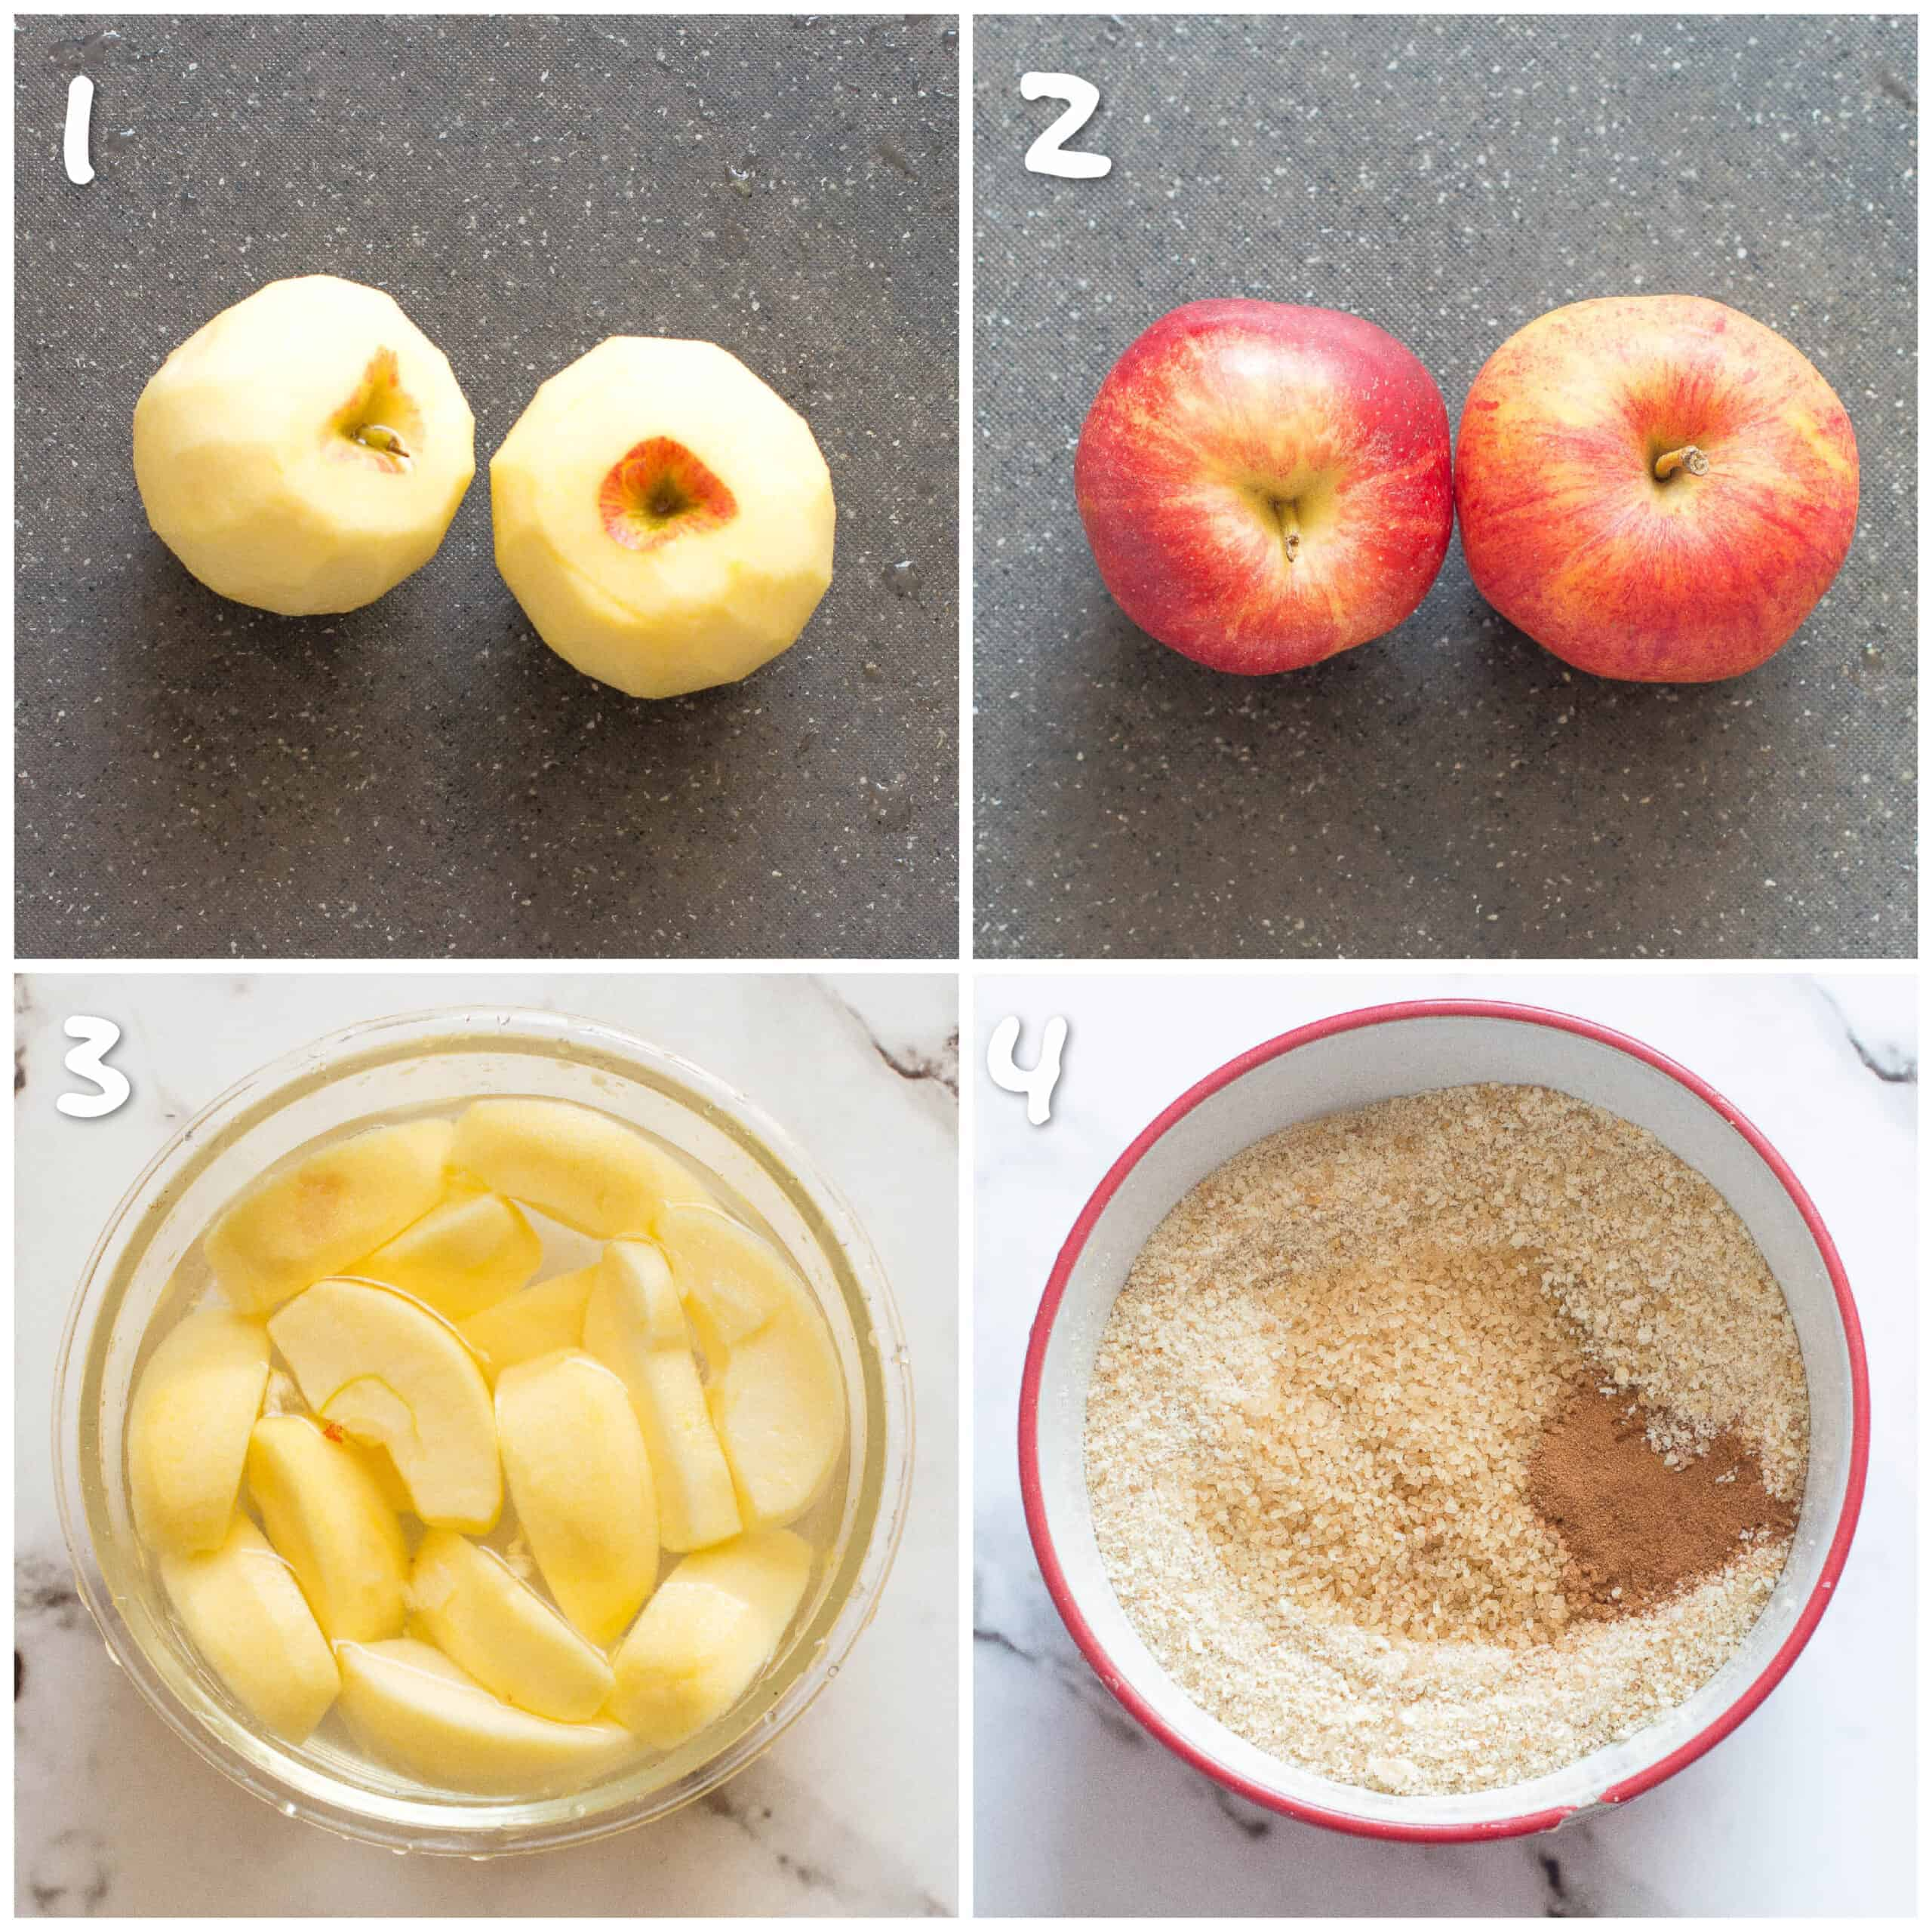 peeling the apples and preparing the coating